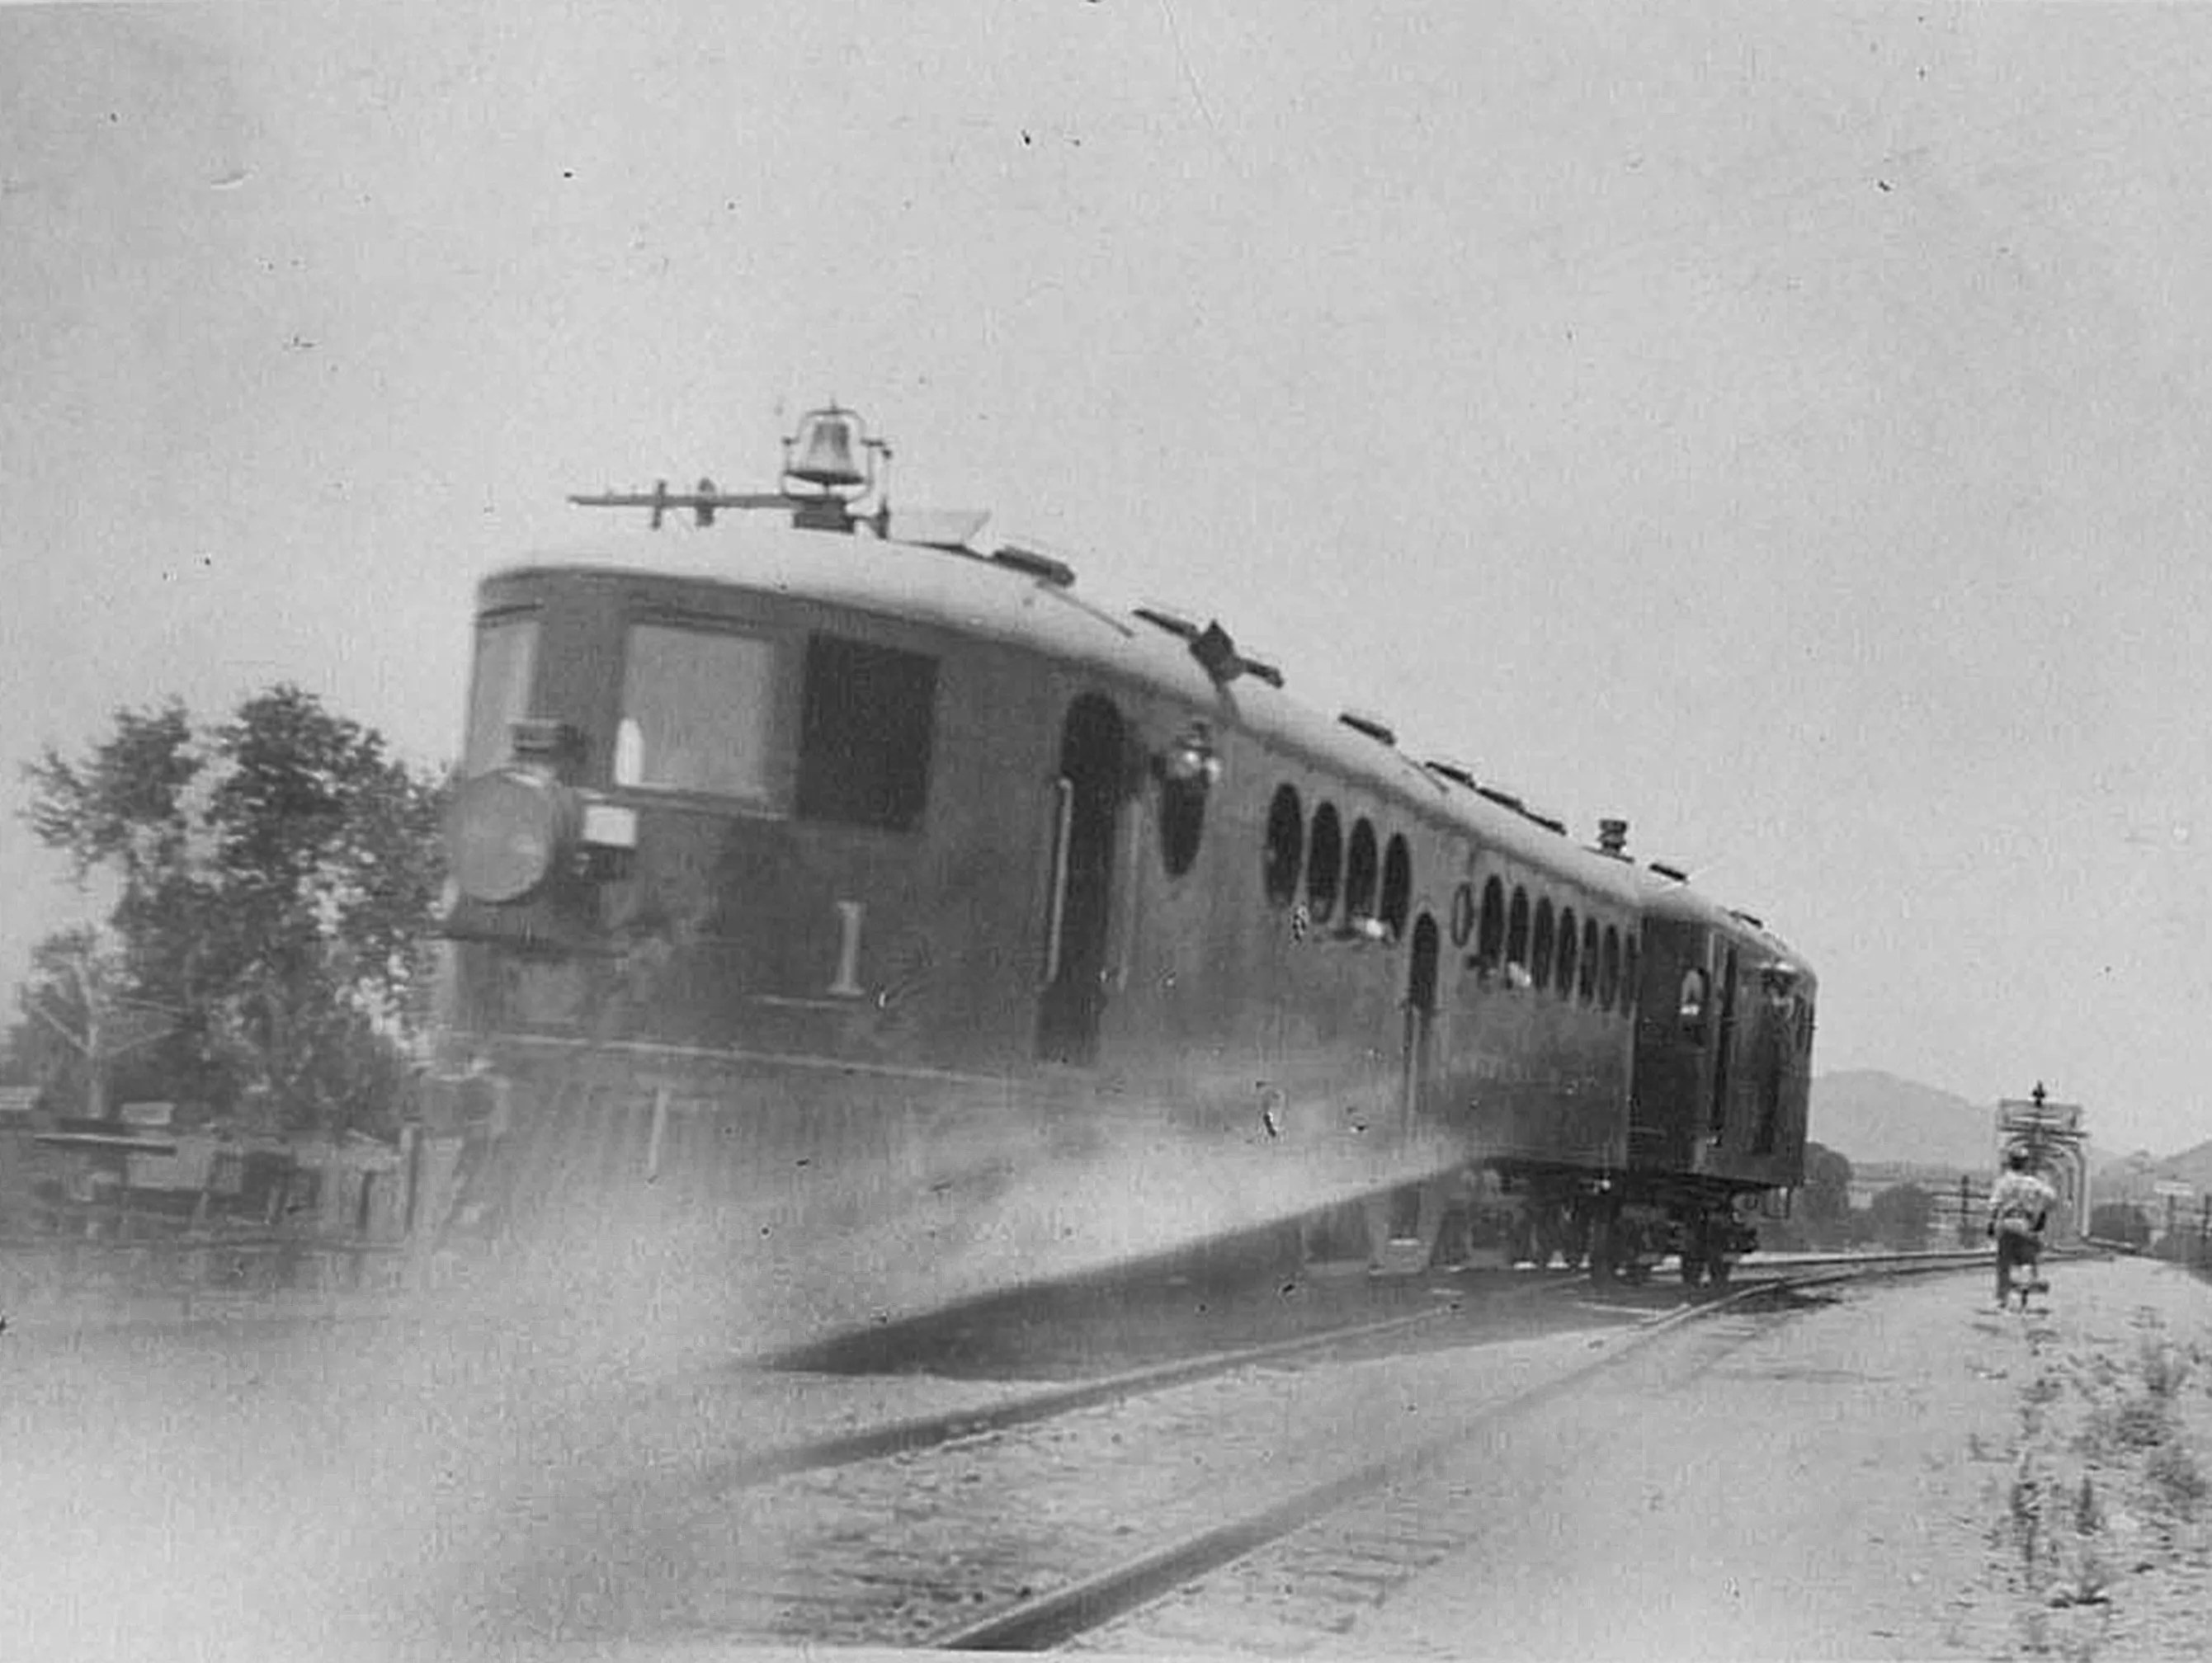 McKeen Motor Cars carried newspapers to Tempe Mesa